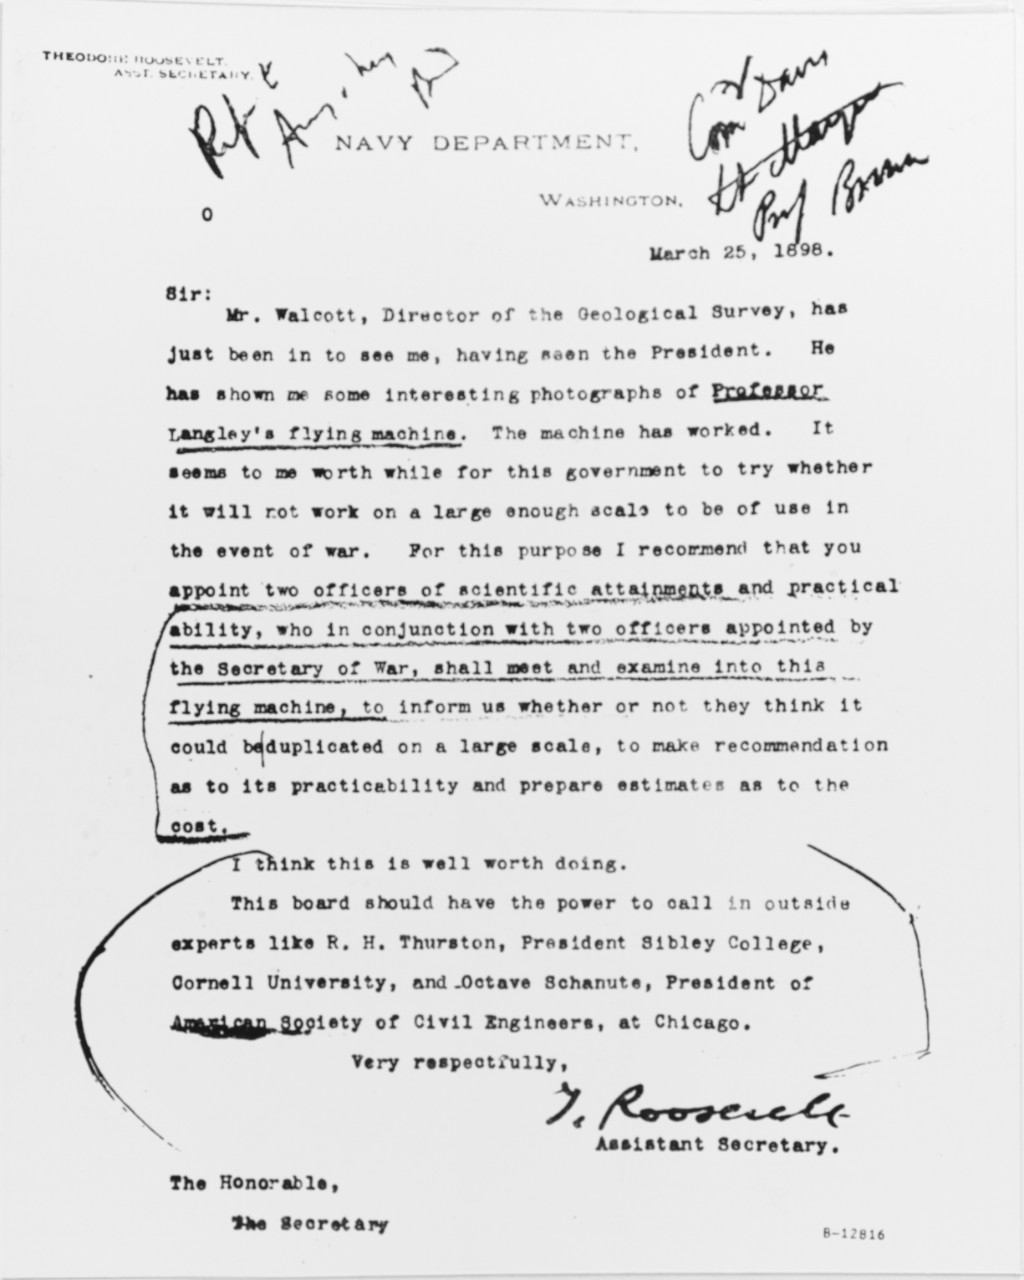 Theodore Roosevelt's letter to John D. Long, The Secretary of the Navy.